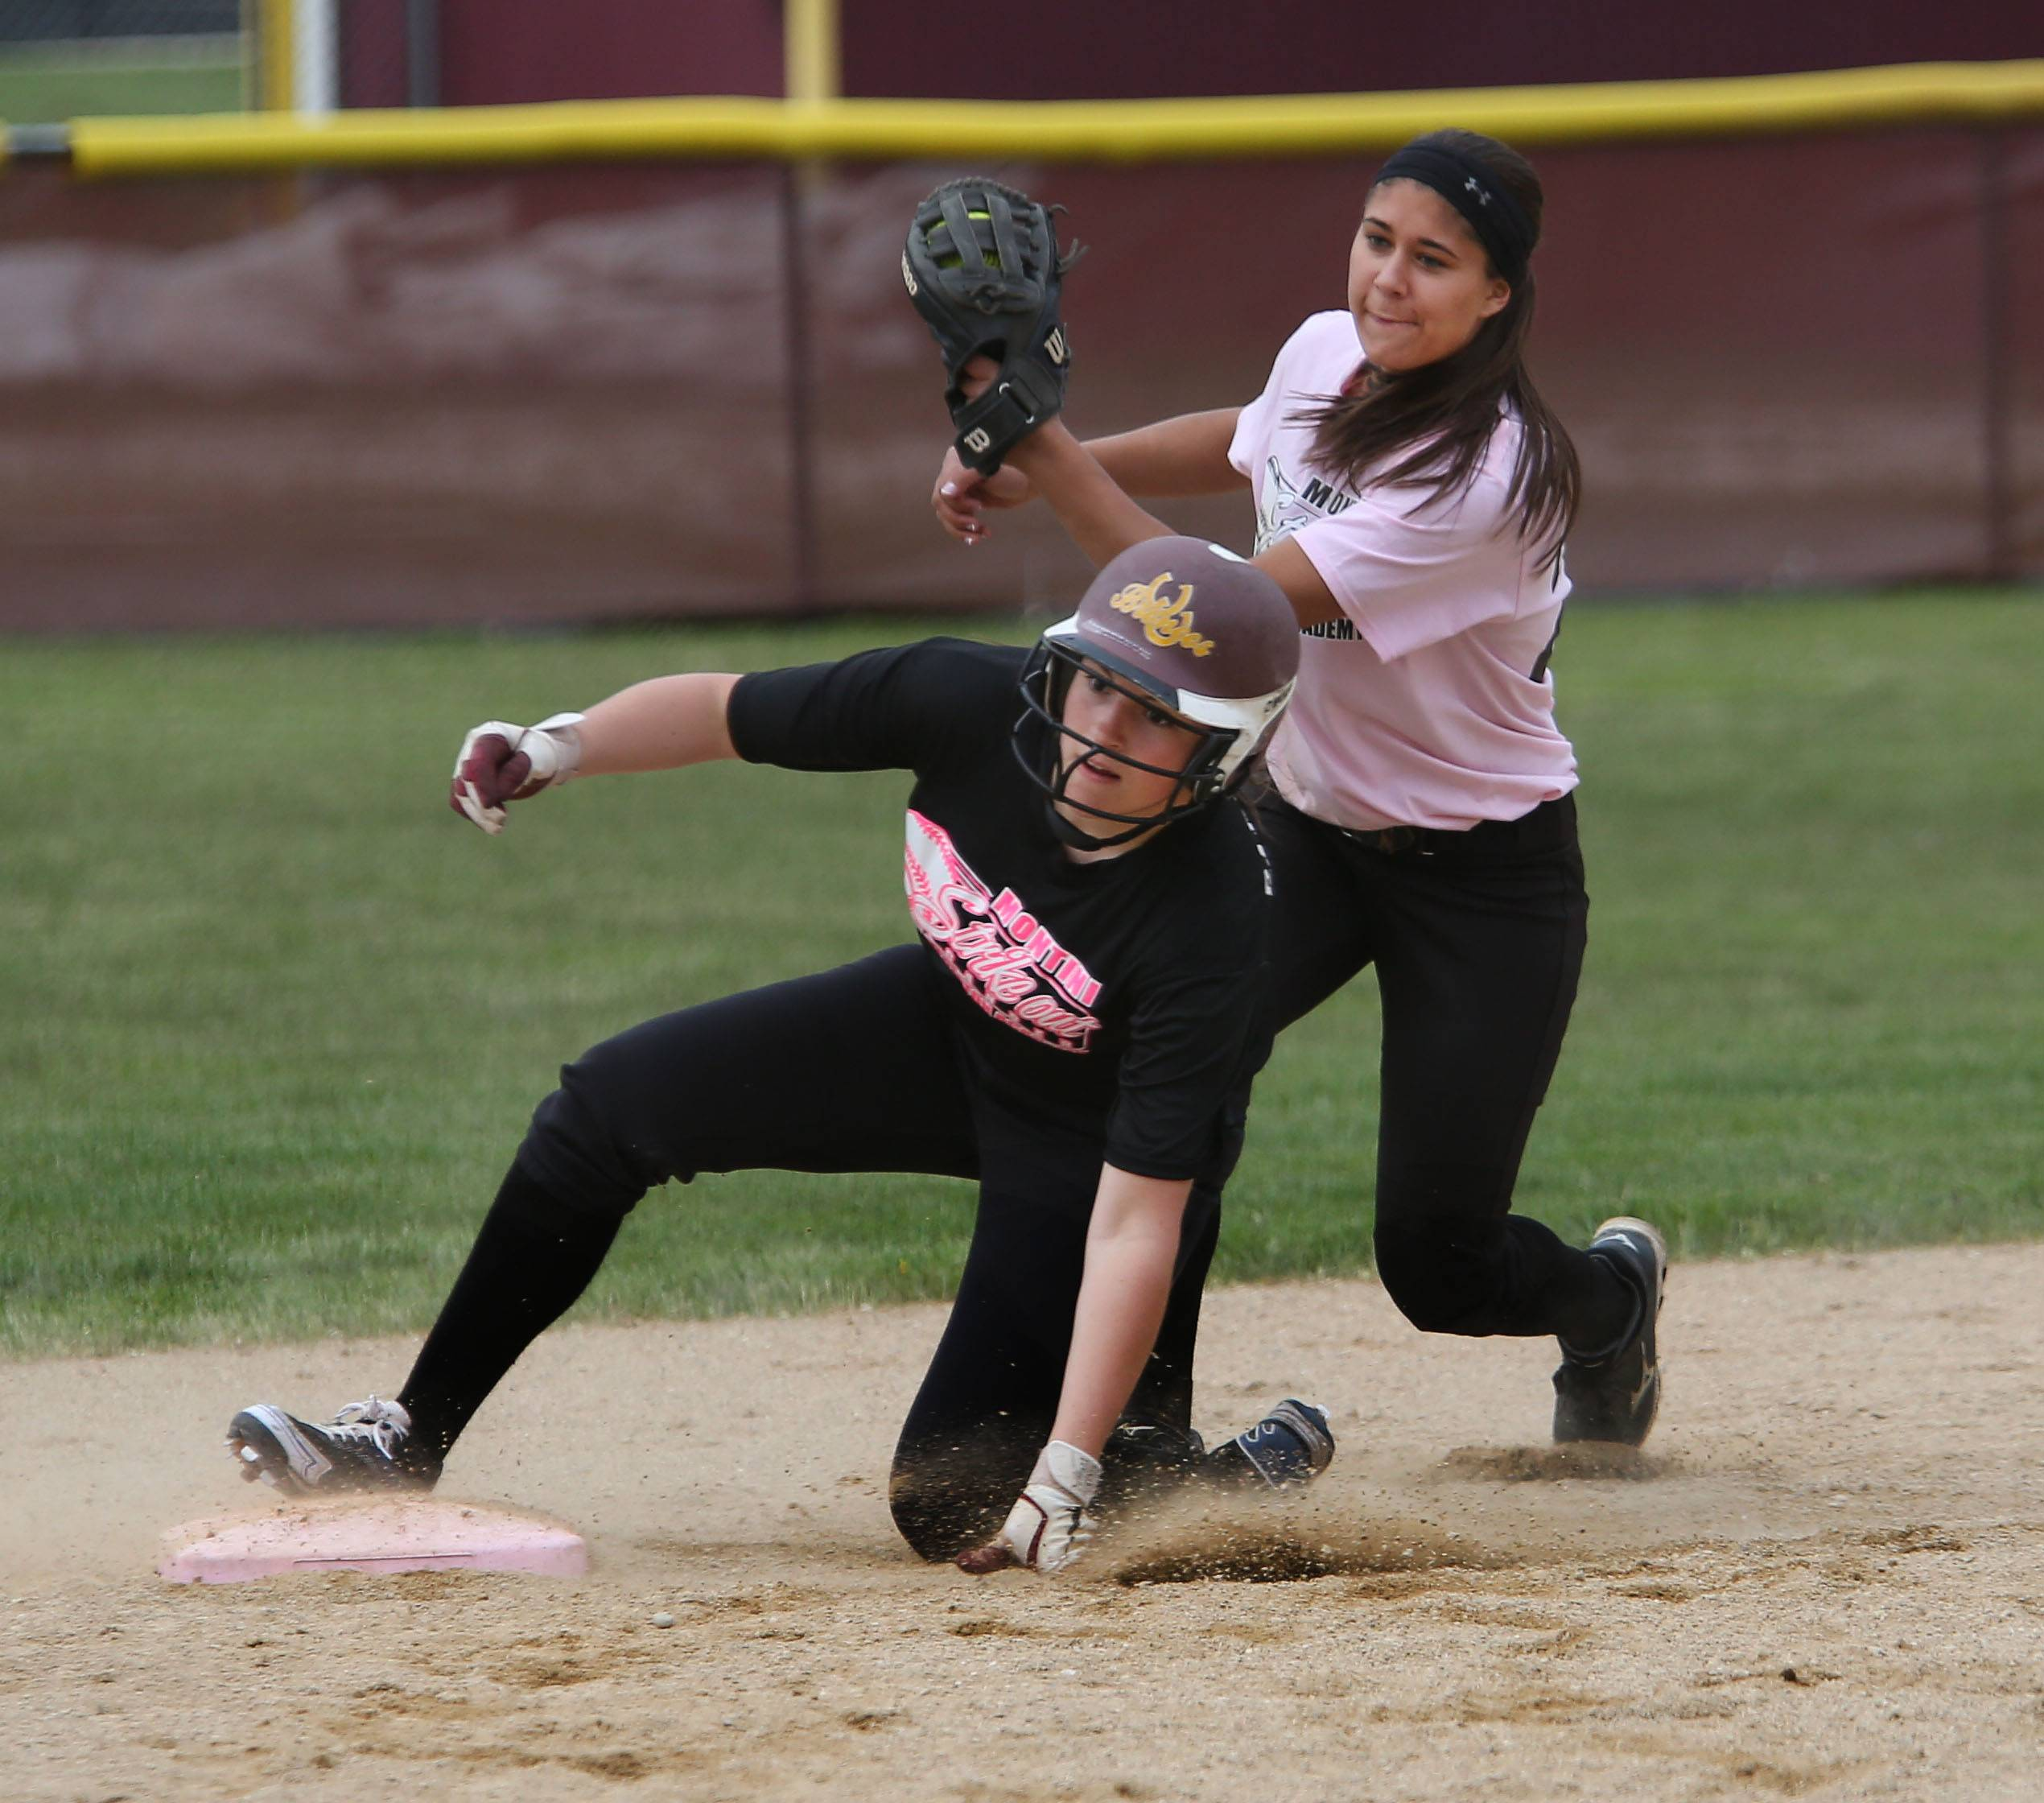 Montini's Ashley Lentine is safe at second base as Marissa Gagliano of Wheaton Academy, right, tries to tag her out during softball action in Lombard on Monday.